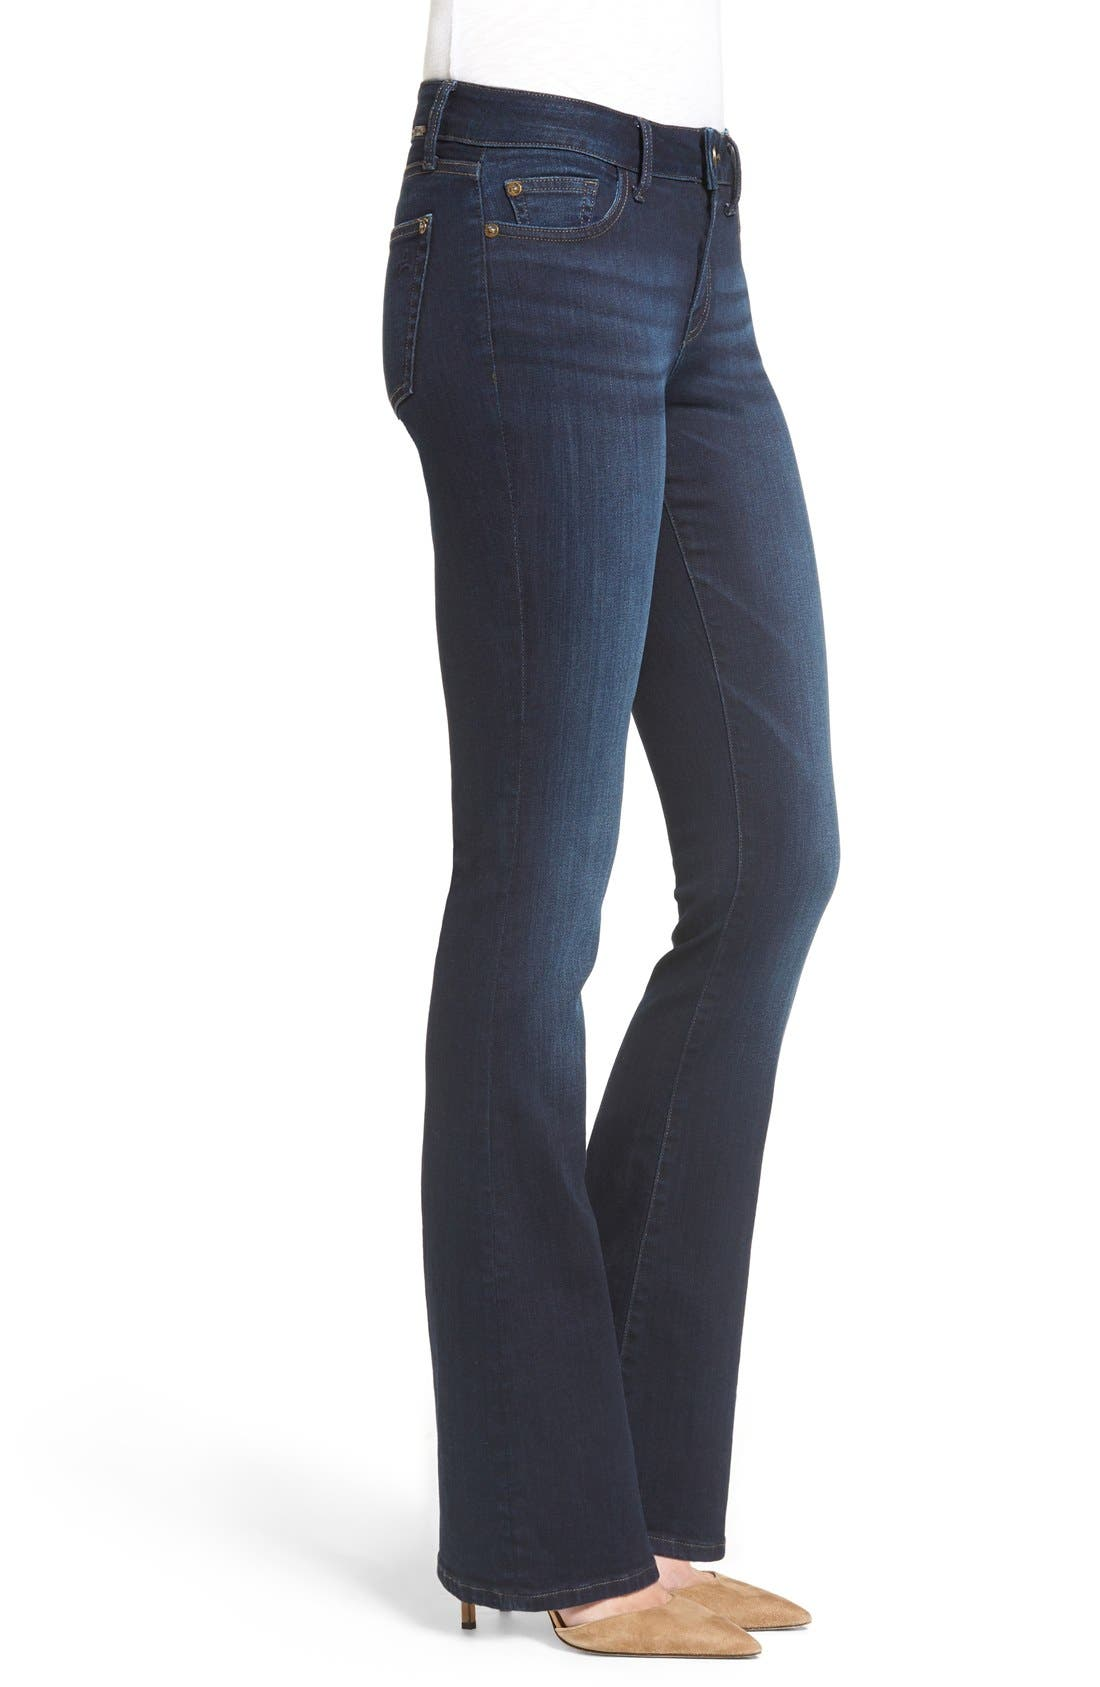 Alternate Image 3  - DL1961 'Bridget 33' Bootcut Jeans (Peak)